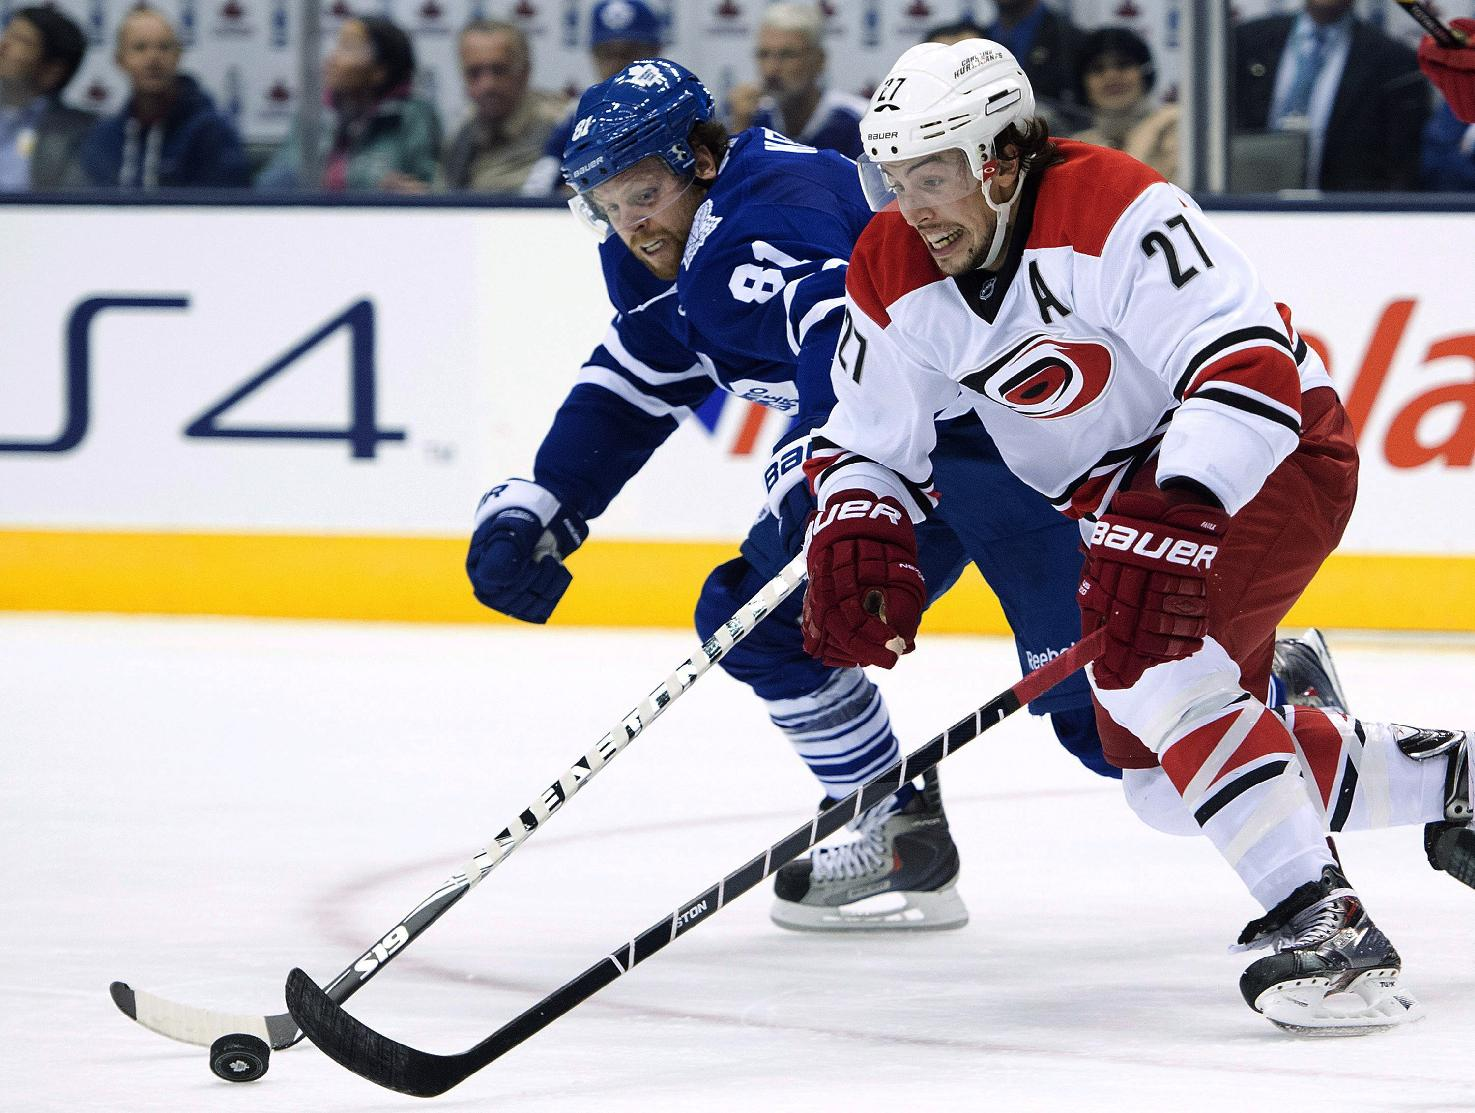 Toronto Maple Leafs forward Phil Kessel, back, chases down Carolina Hurricanes defenceman Justin Faulk during the second period of an NHL hockey game in Toronto on Thursday, Oct. 17, 2013